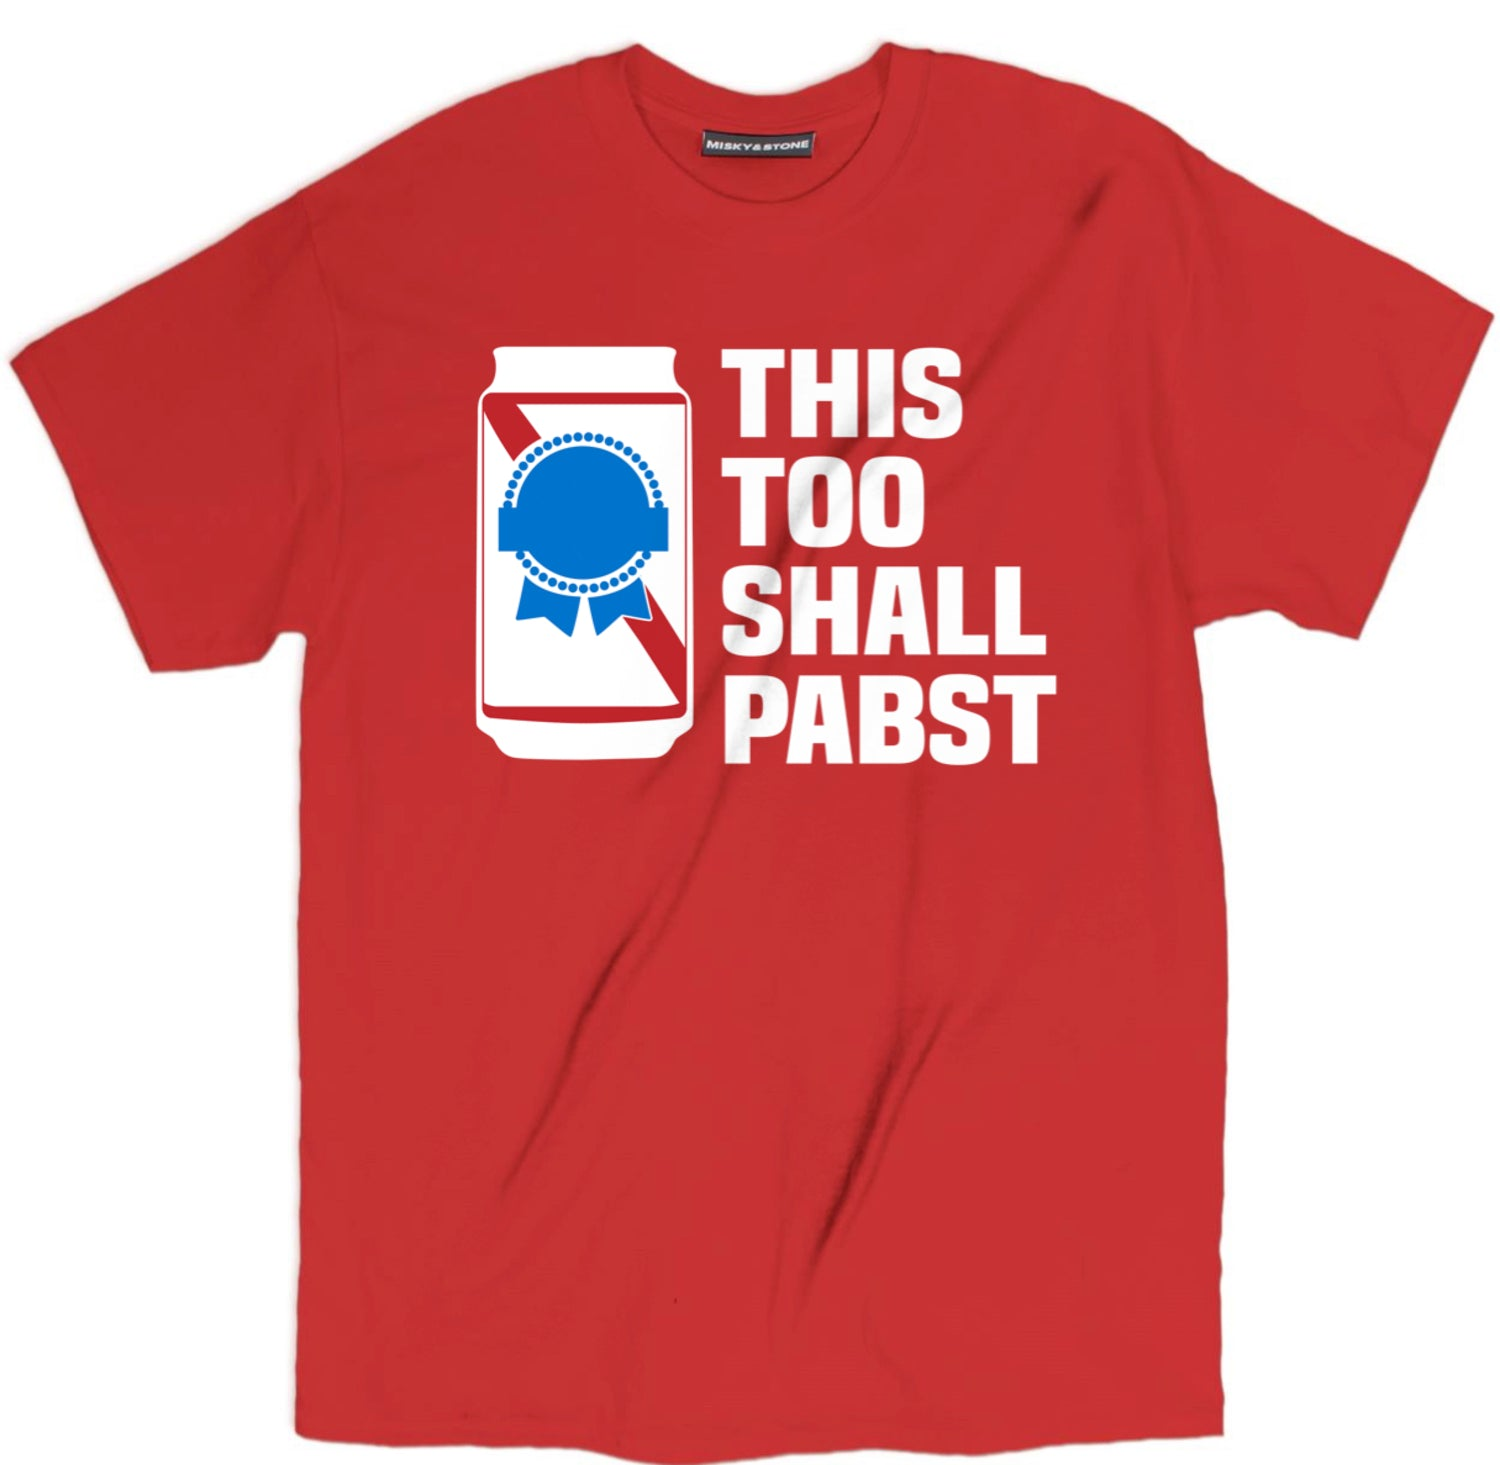 This Too Shall Pabst Shirt